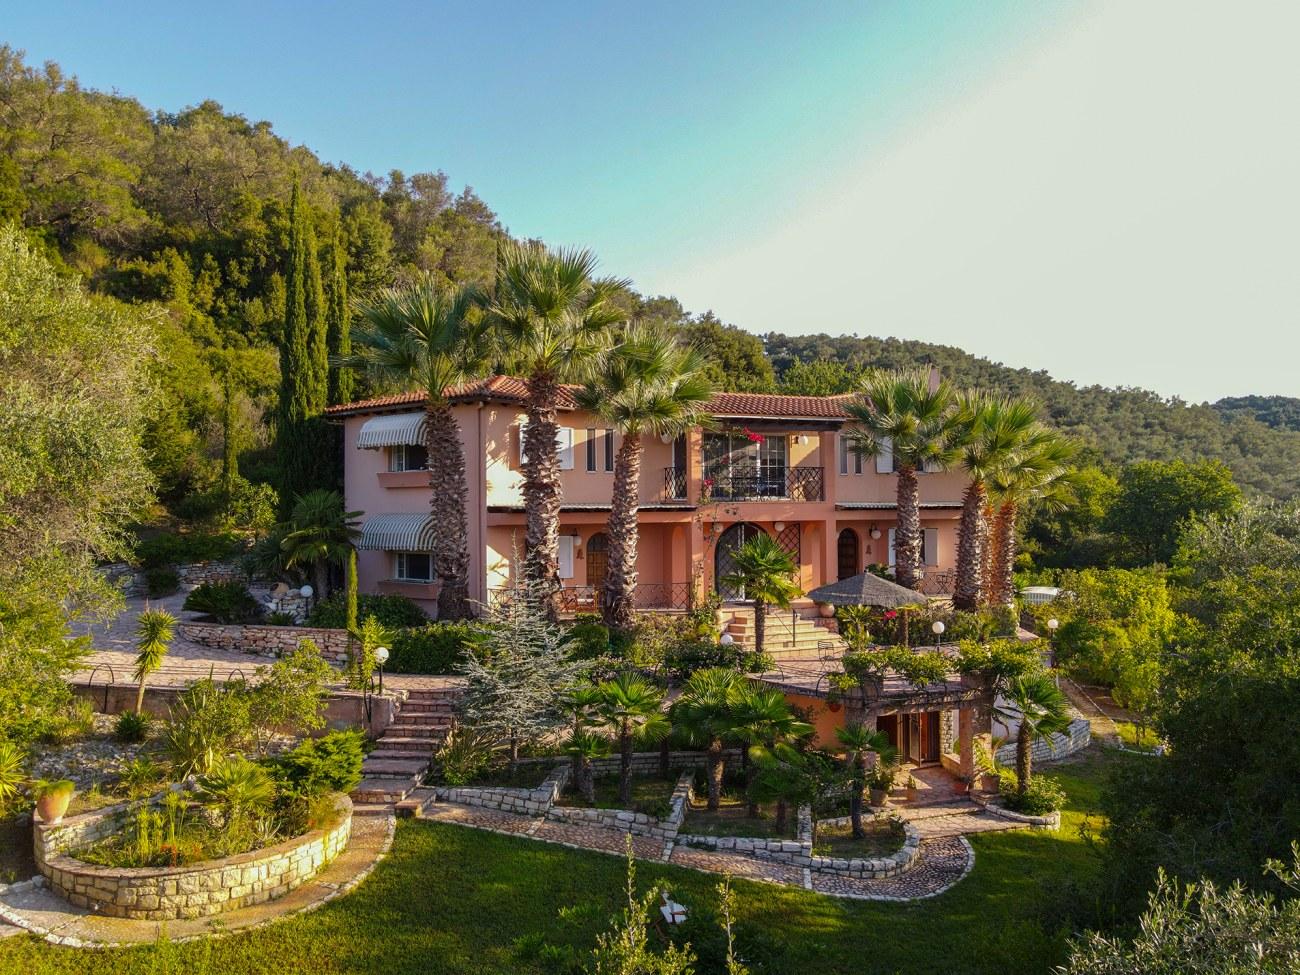 dji-0261-roula-rouva-corfu-real-estate